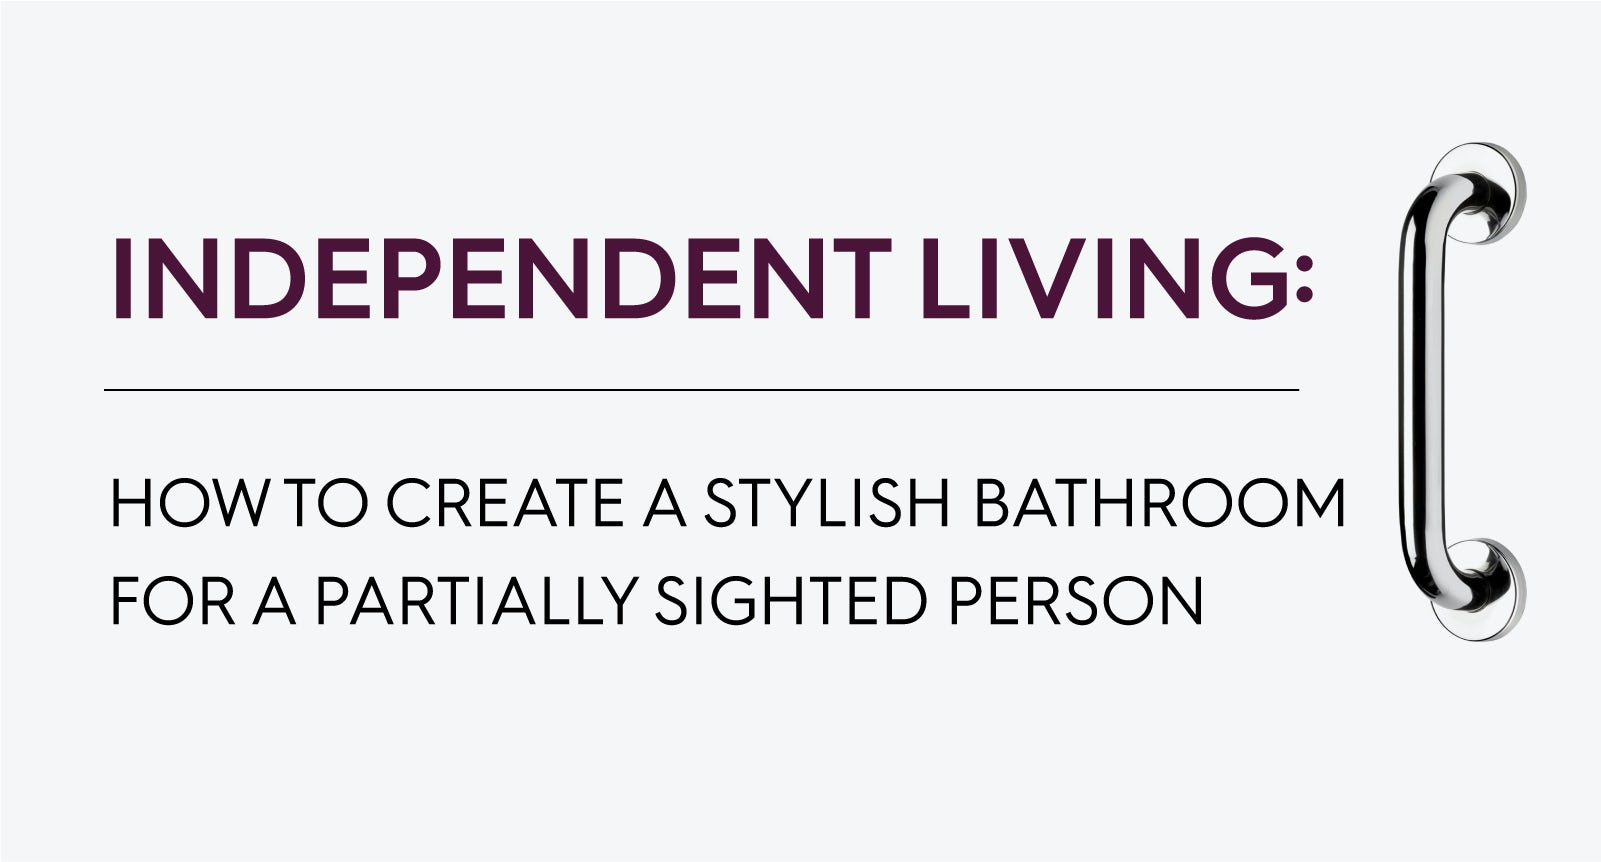 Independent Living: How to create a stylish bathroom for a partially sighted person